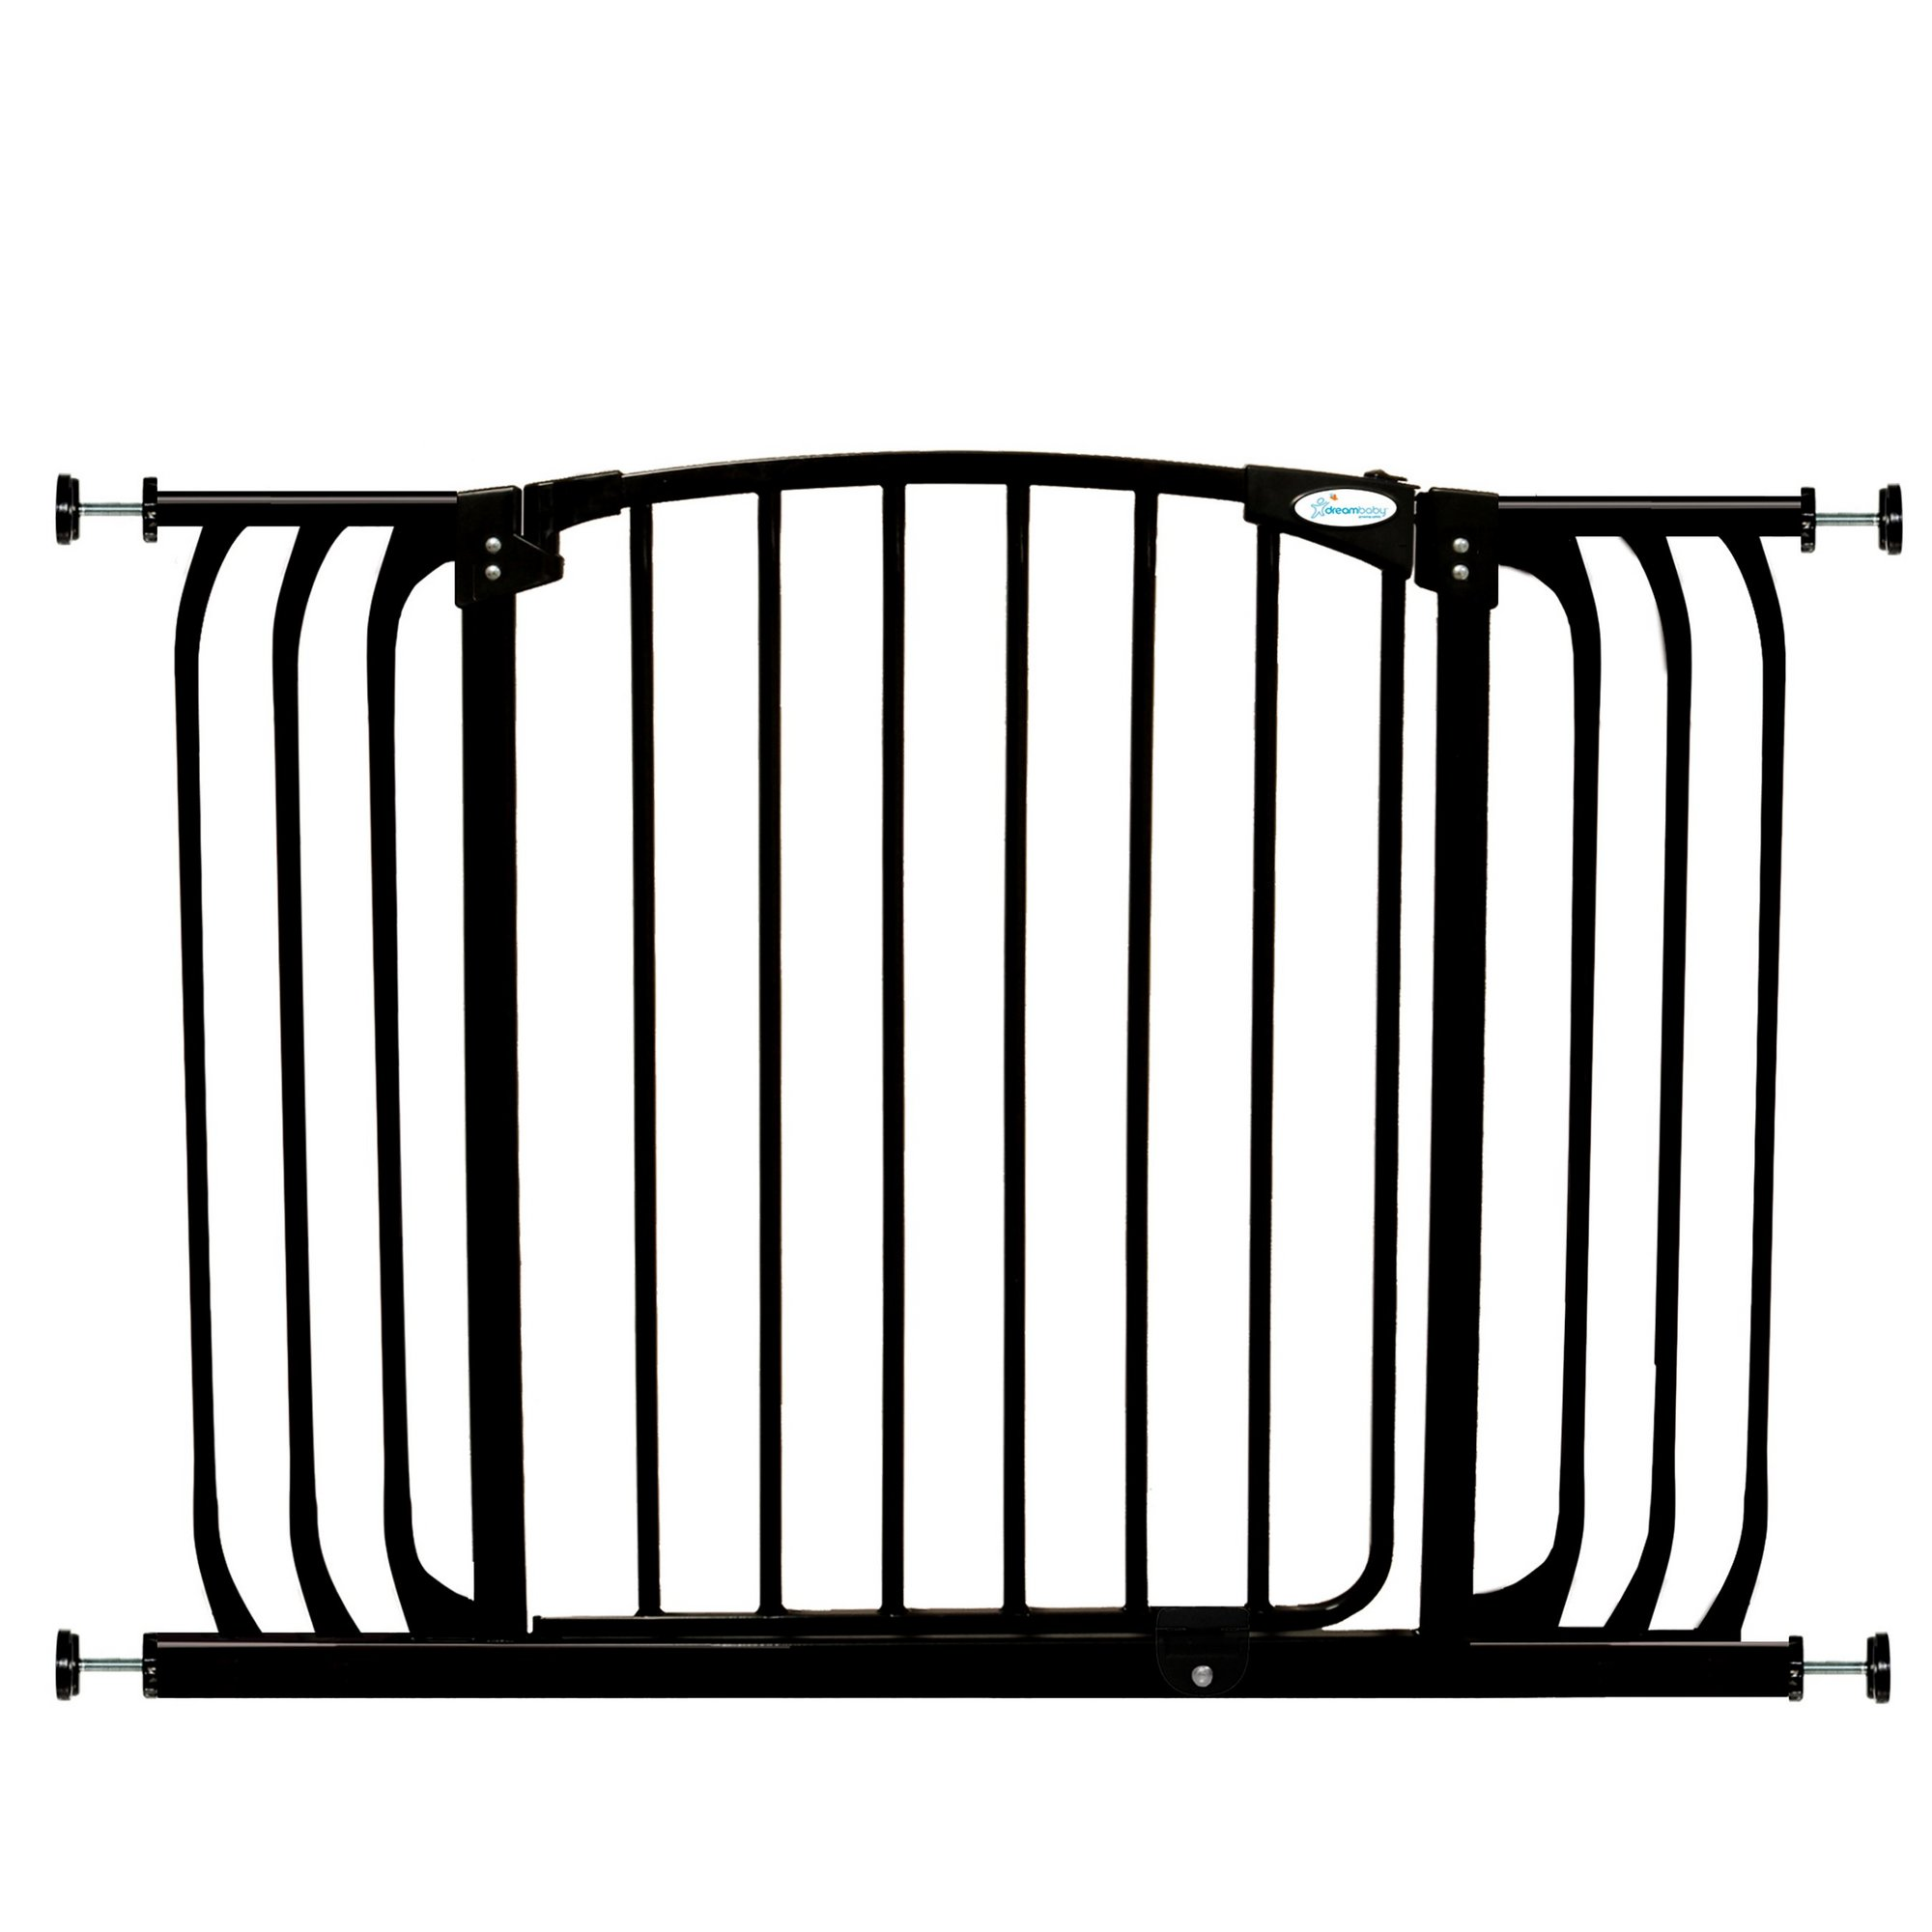 Image of Auto-Close Xtra-Wide Gate